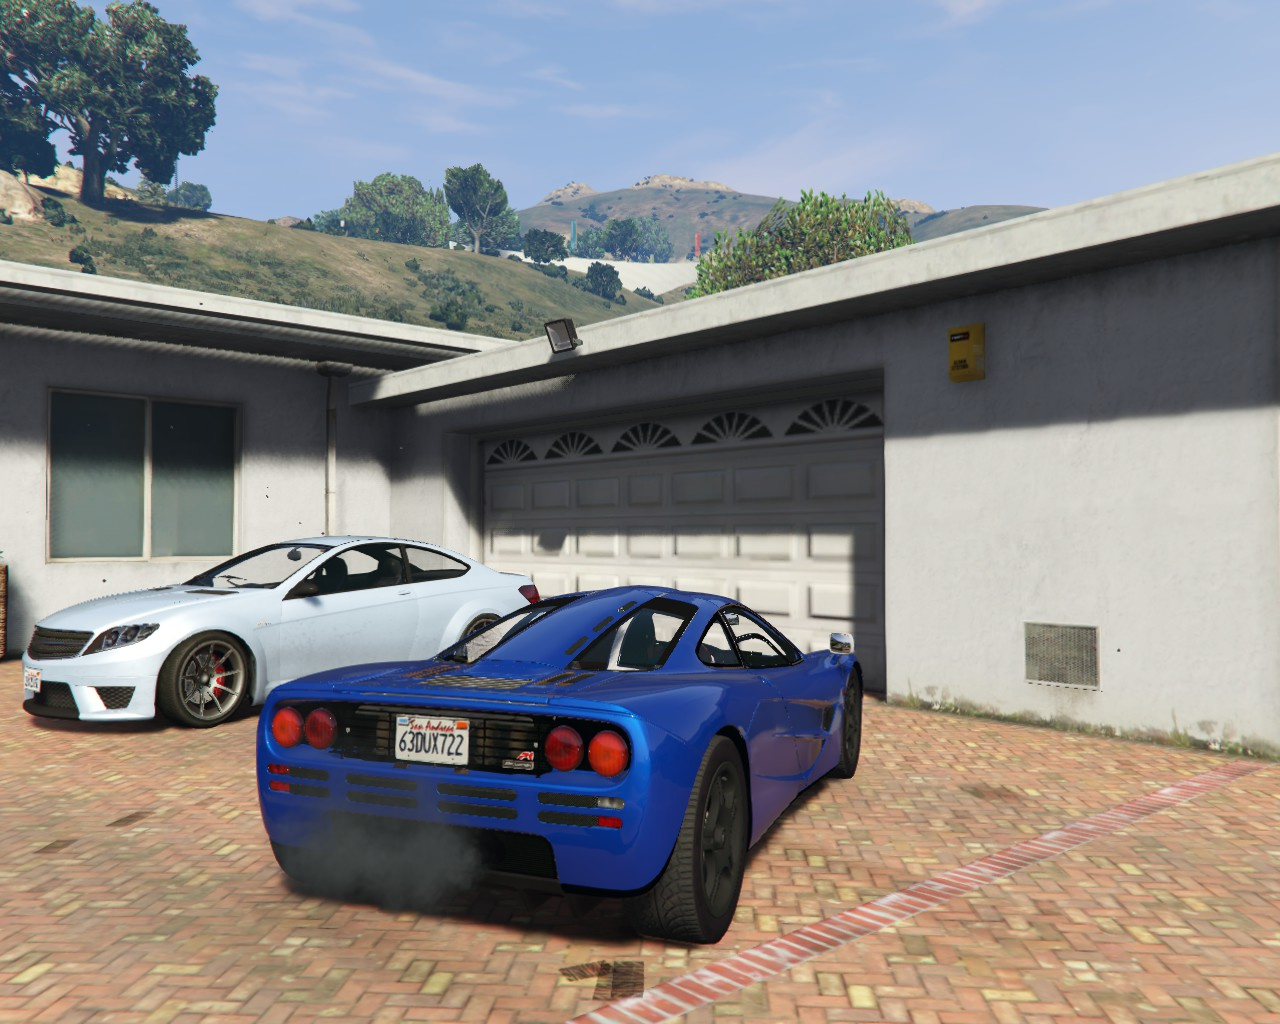 mclaren f1 1993 additions (handling, sound and more) - gta5-mods